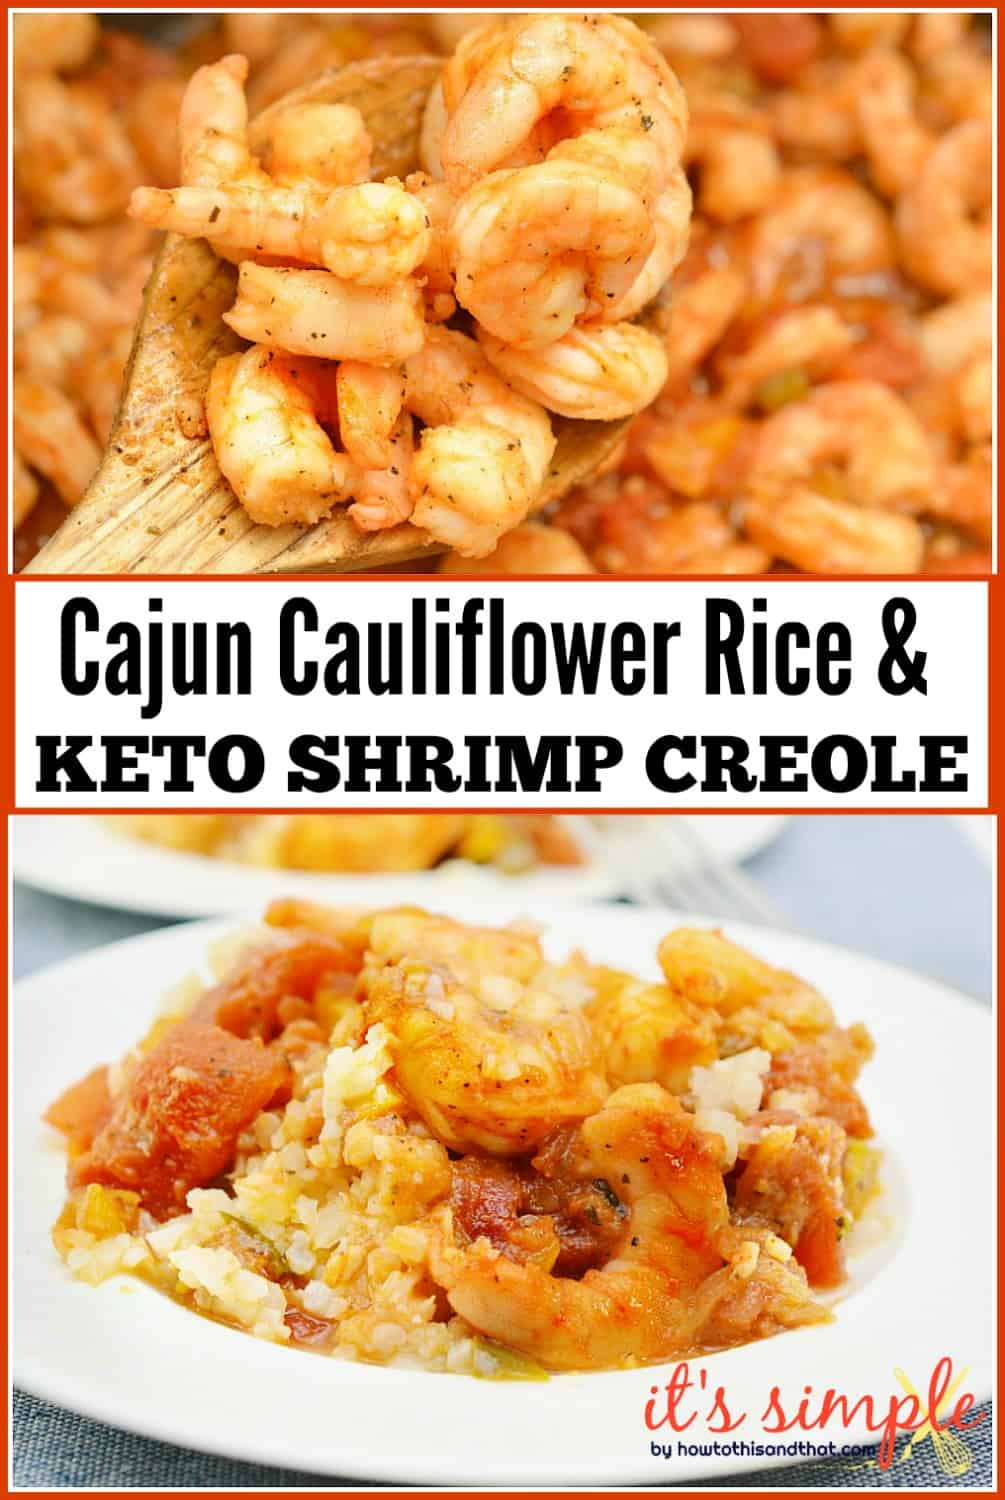 cajun cauliflower